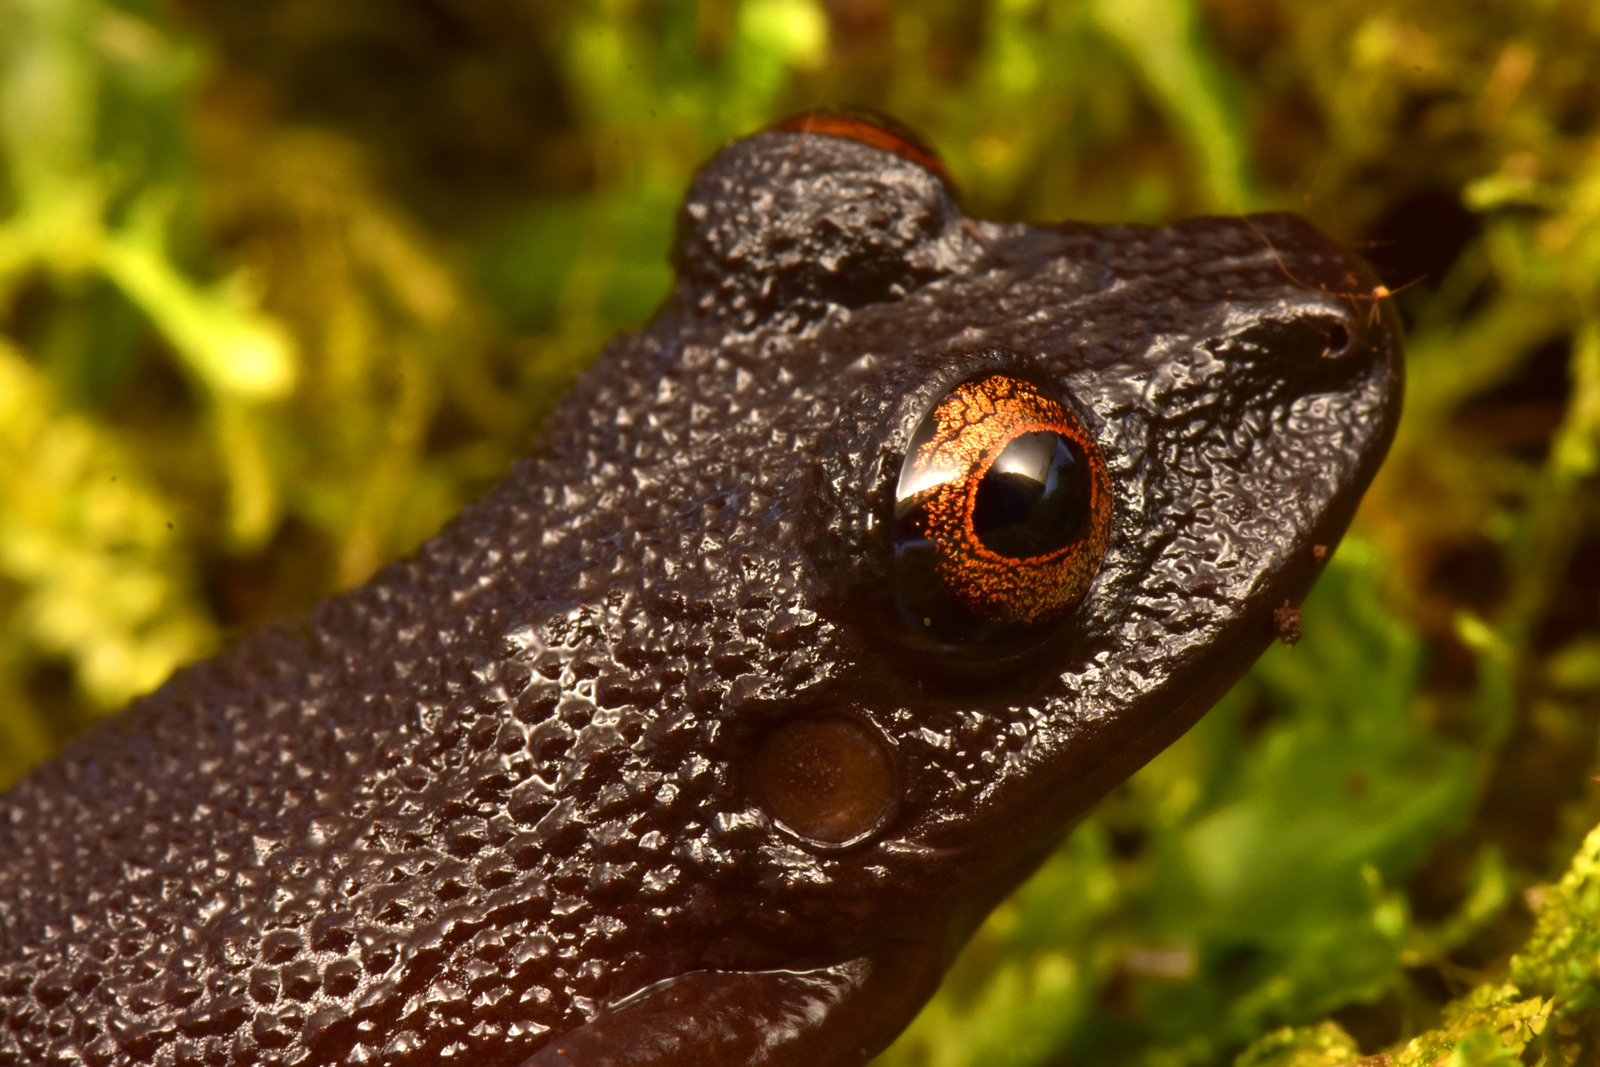 The devil-eyed frog (Oreobates zongoensis) was rediscovered on the Zongo RAP expedition in Bolivia. This species was previously known only from a single individual seen more than 20 years ago in the Zongo Valley. Image © Trond Larsen.